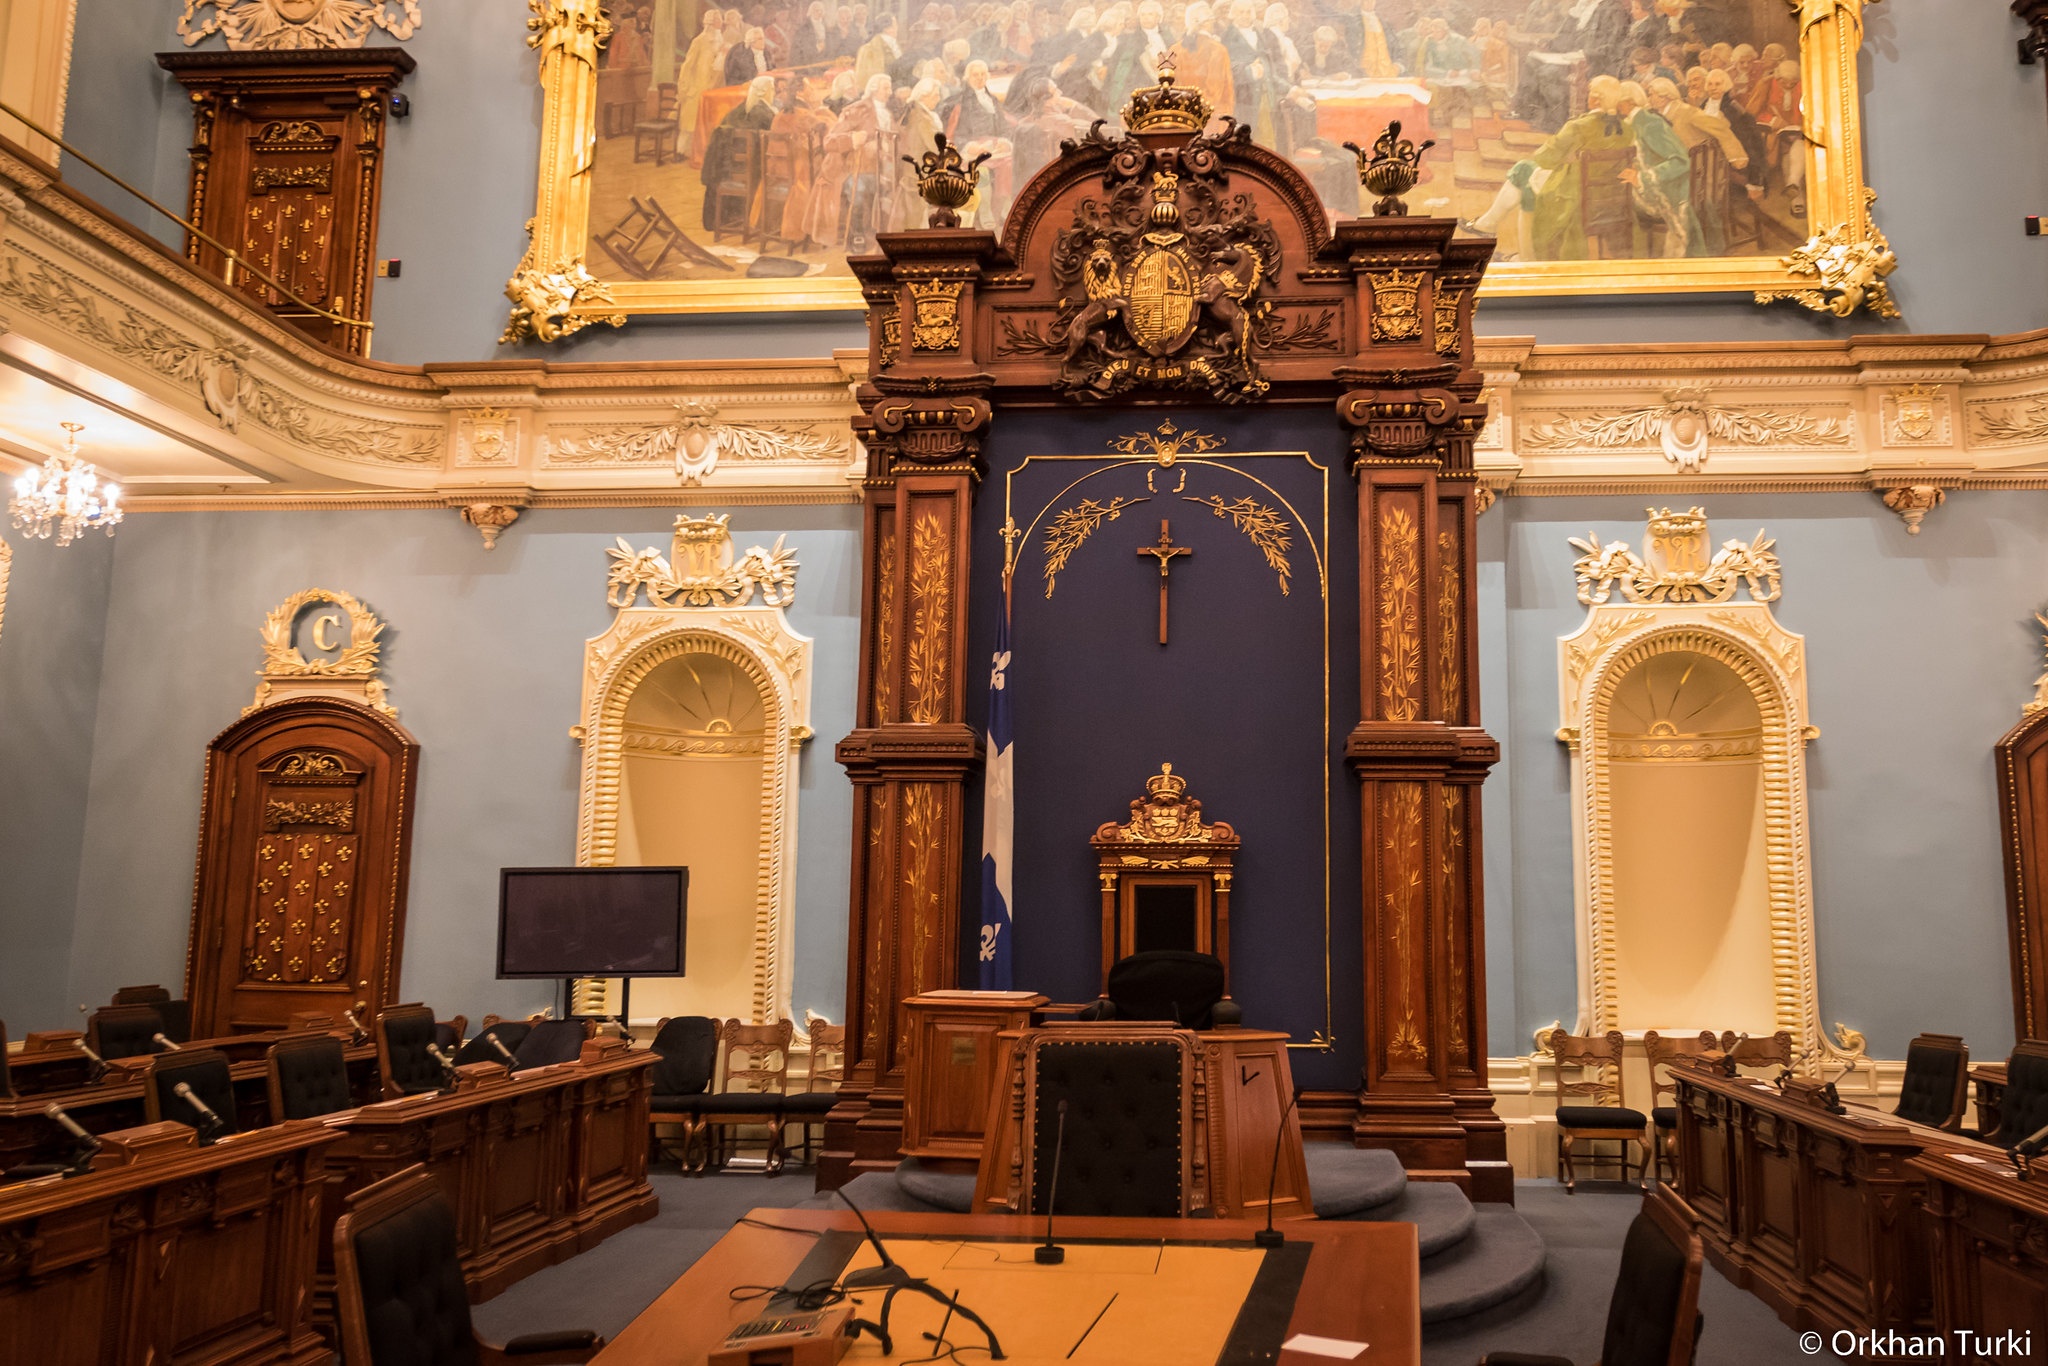 Photo showing the crucifix formerly hung above the Speaker's chair in the National Assembly